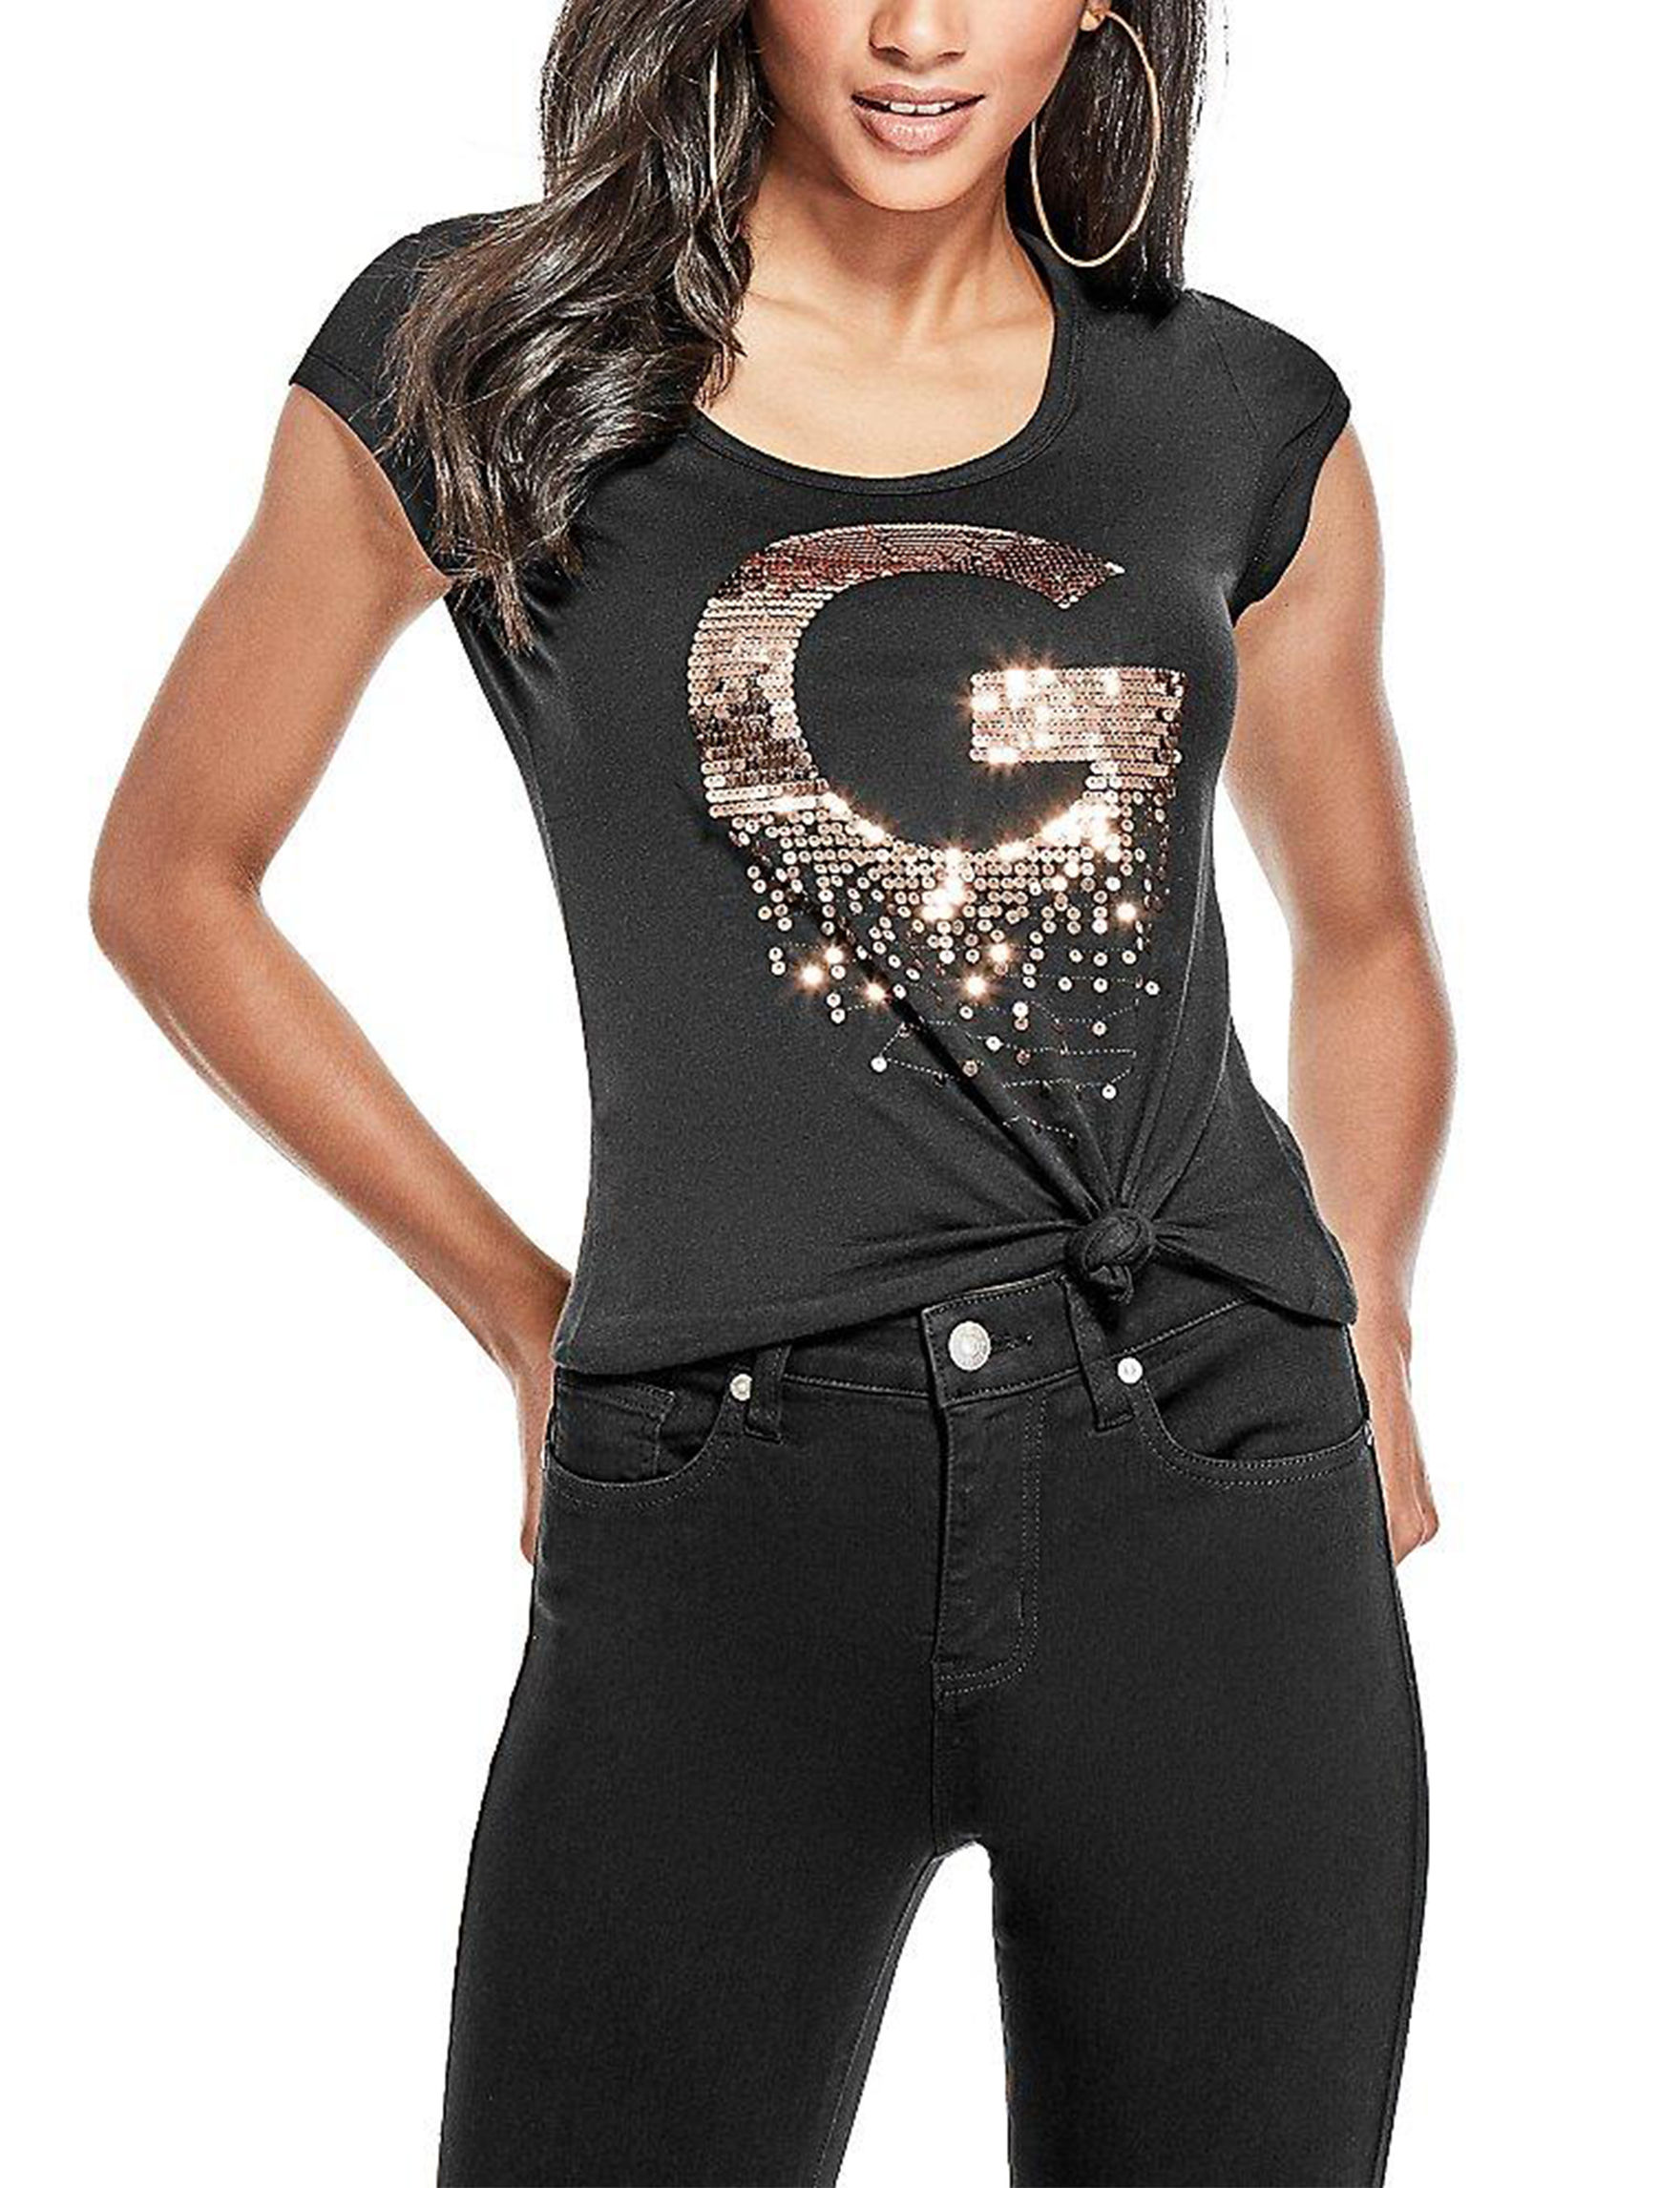 G by Guess Black Tees & Tanks